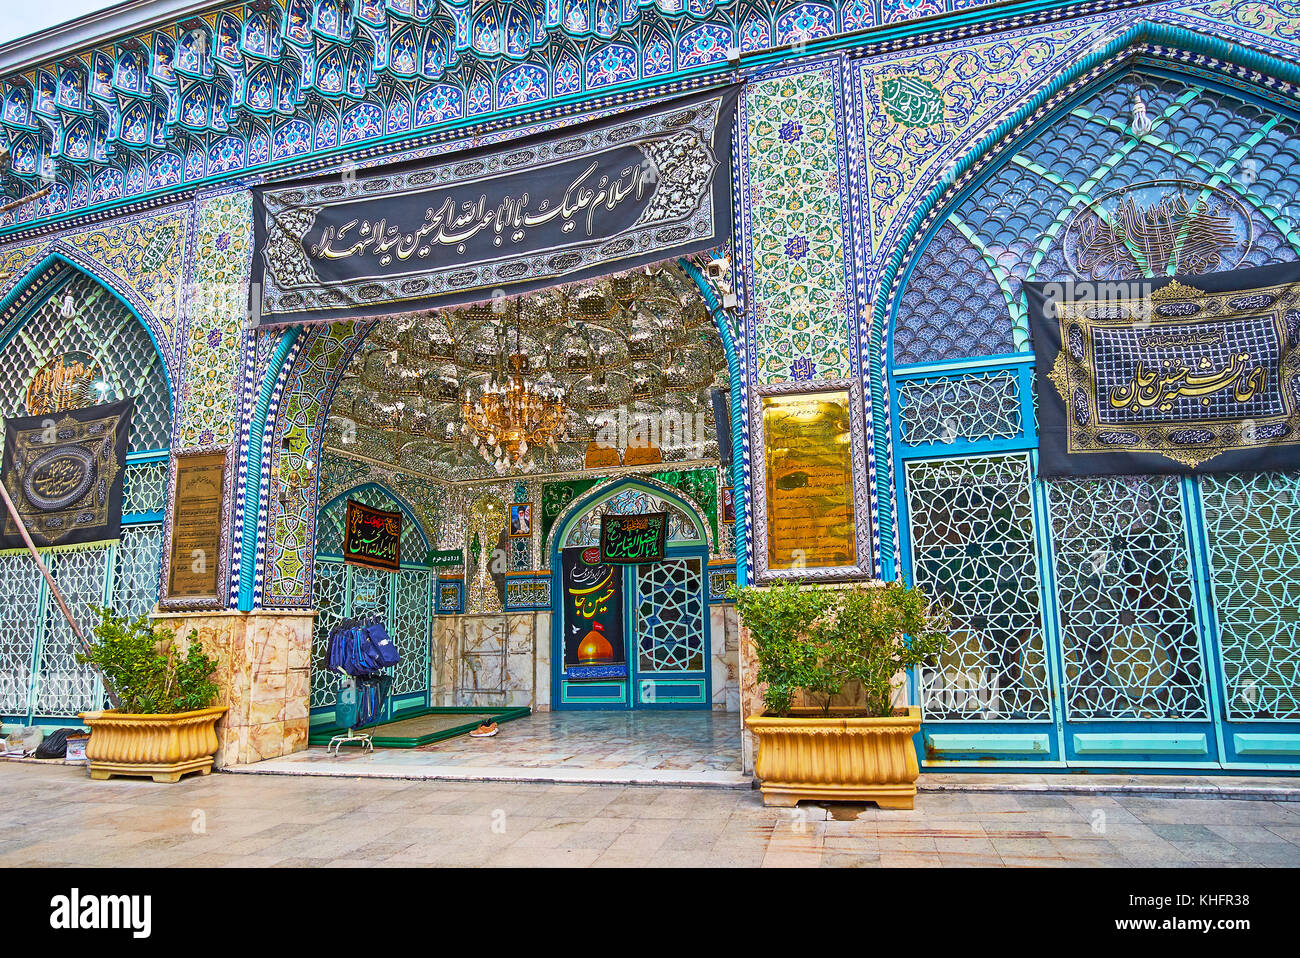 TEHRAN, IRAN - OCTOBER 11, 2017: Emamzadeh Zeyd Holy Shrine is fine example of traditional Persian art and architecture - Stock Image